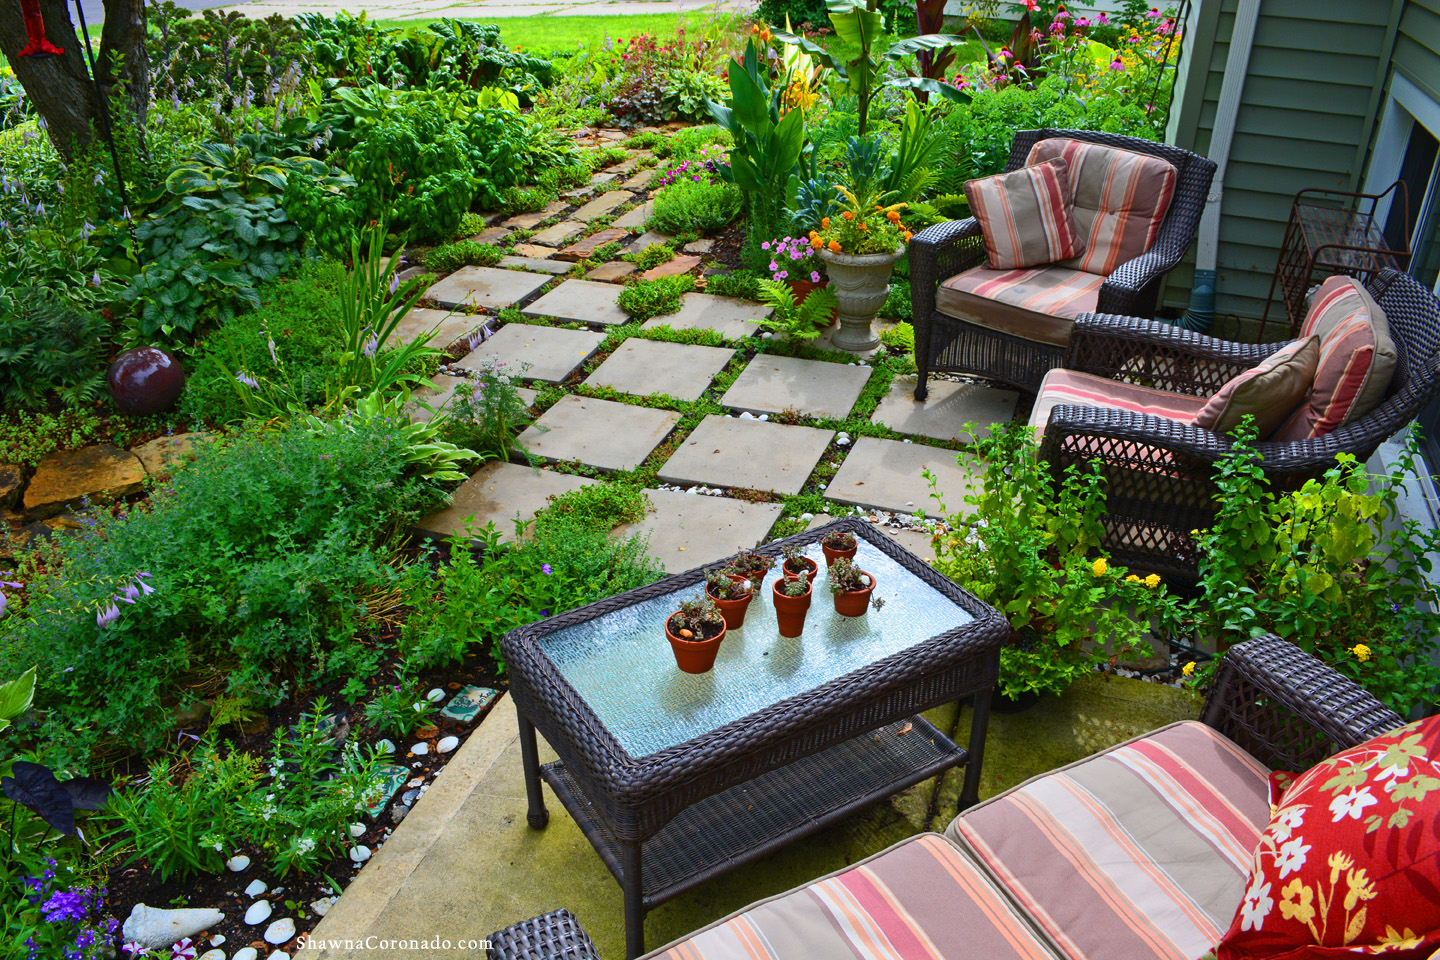 Herb and Perennial Garden Patio copyright Shawna Coronado